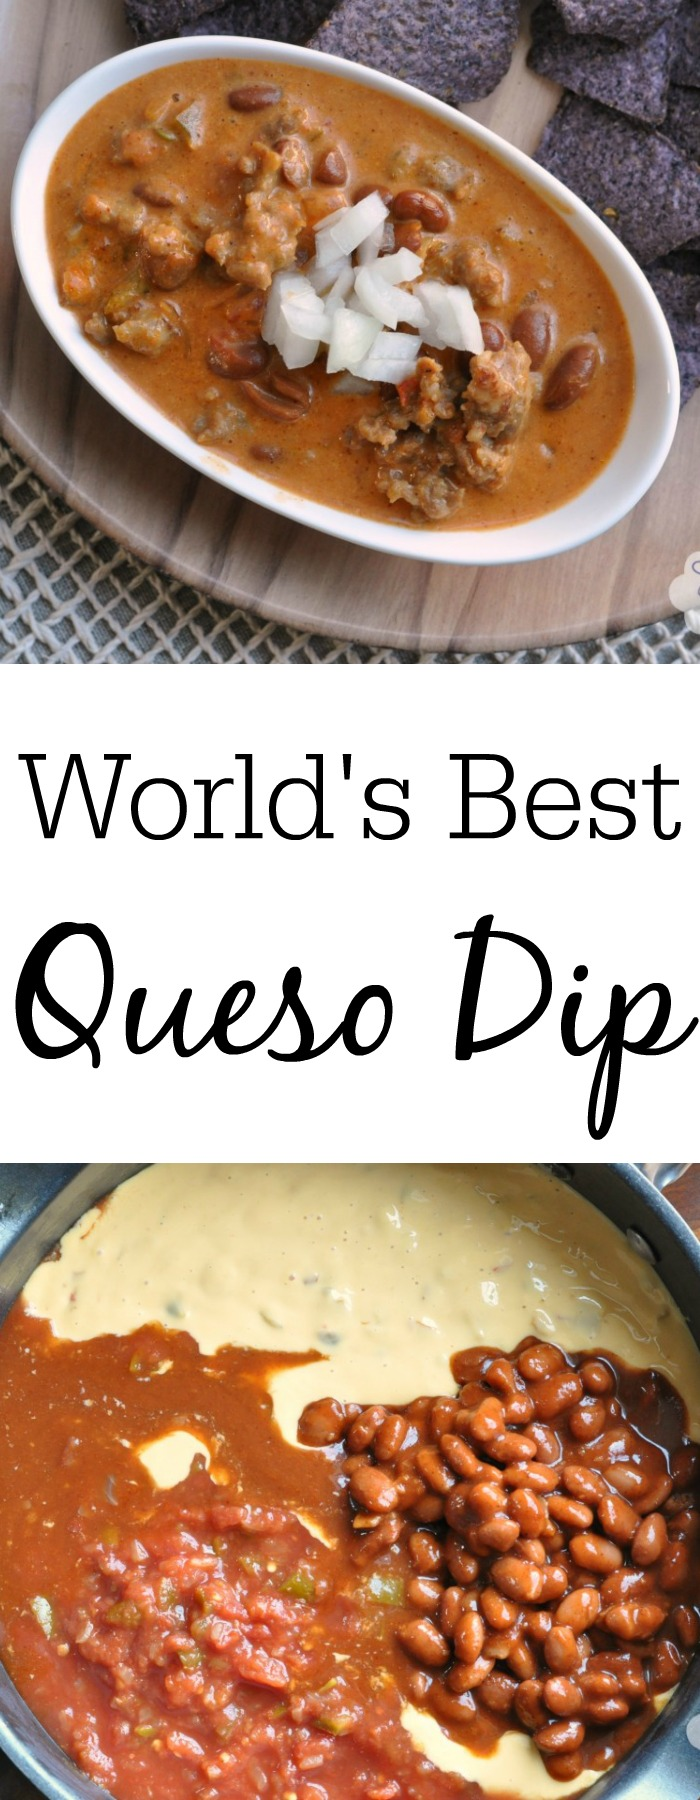 No, I am not exaggerating. This is the world's best queso dip!